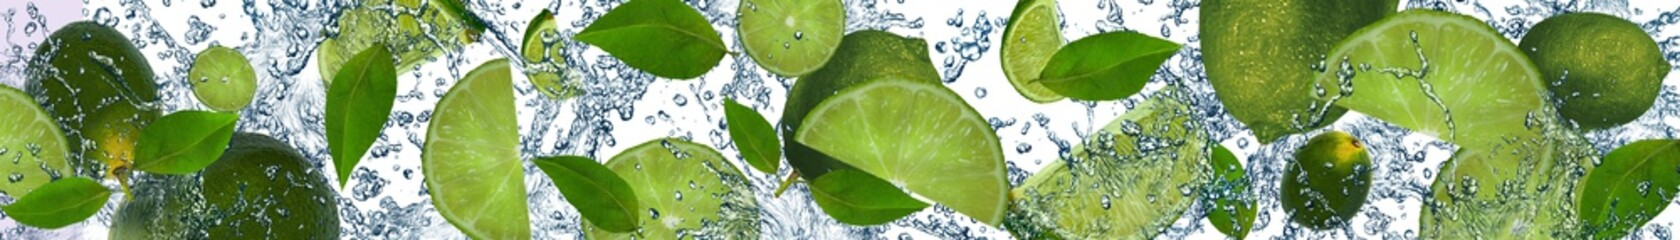 Limes in the water